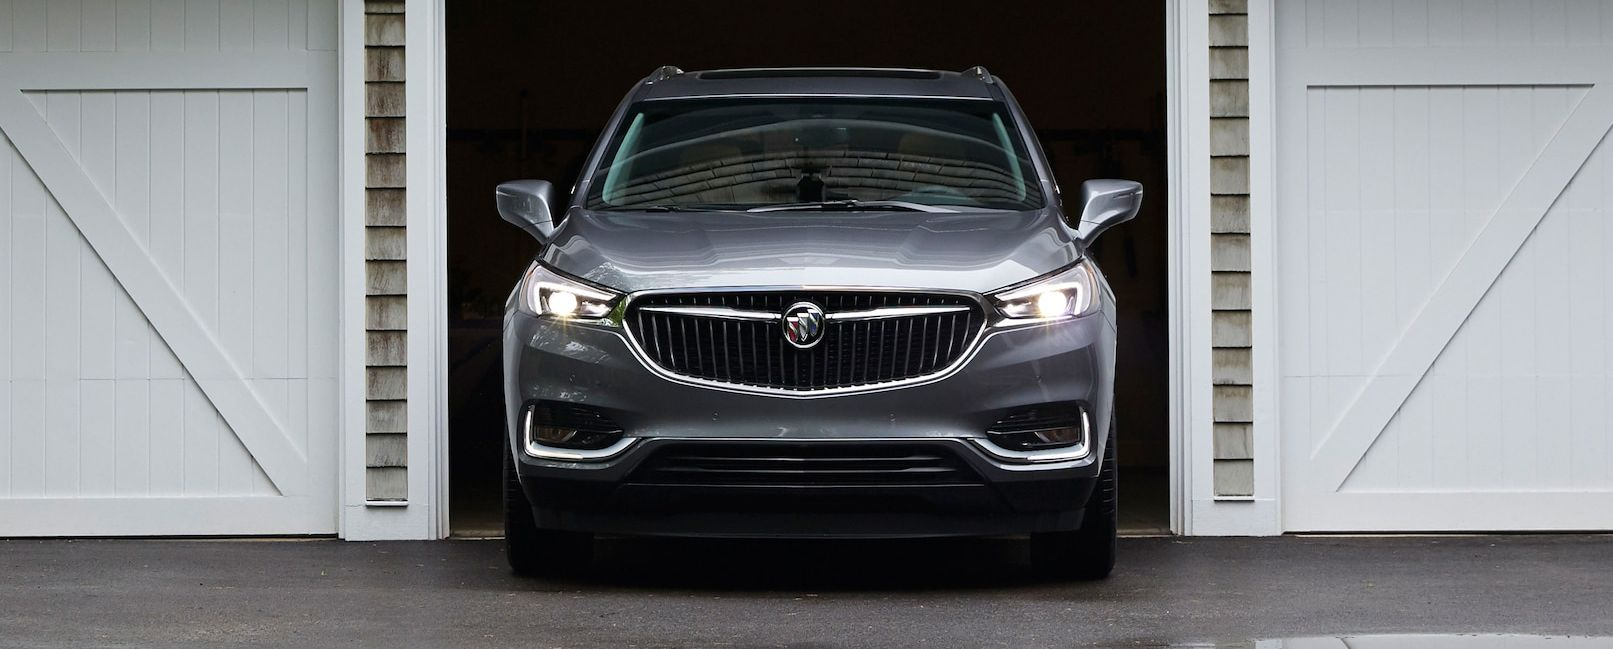 Used Buick Enclave For Sale >> Used Buick Enclave For Sale In Youngstown Oh